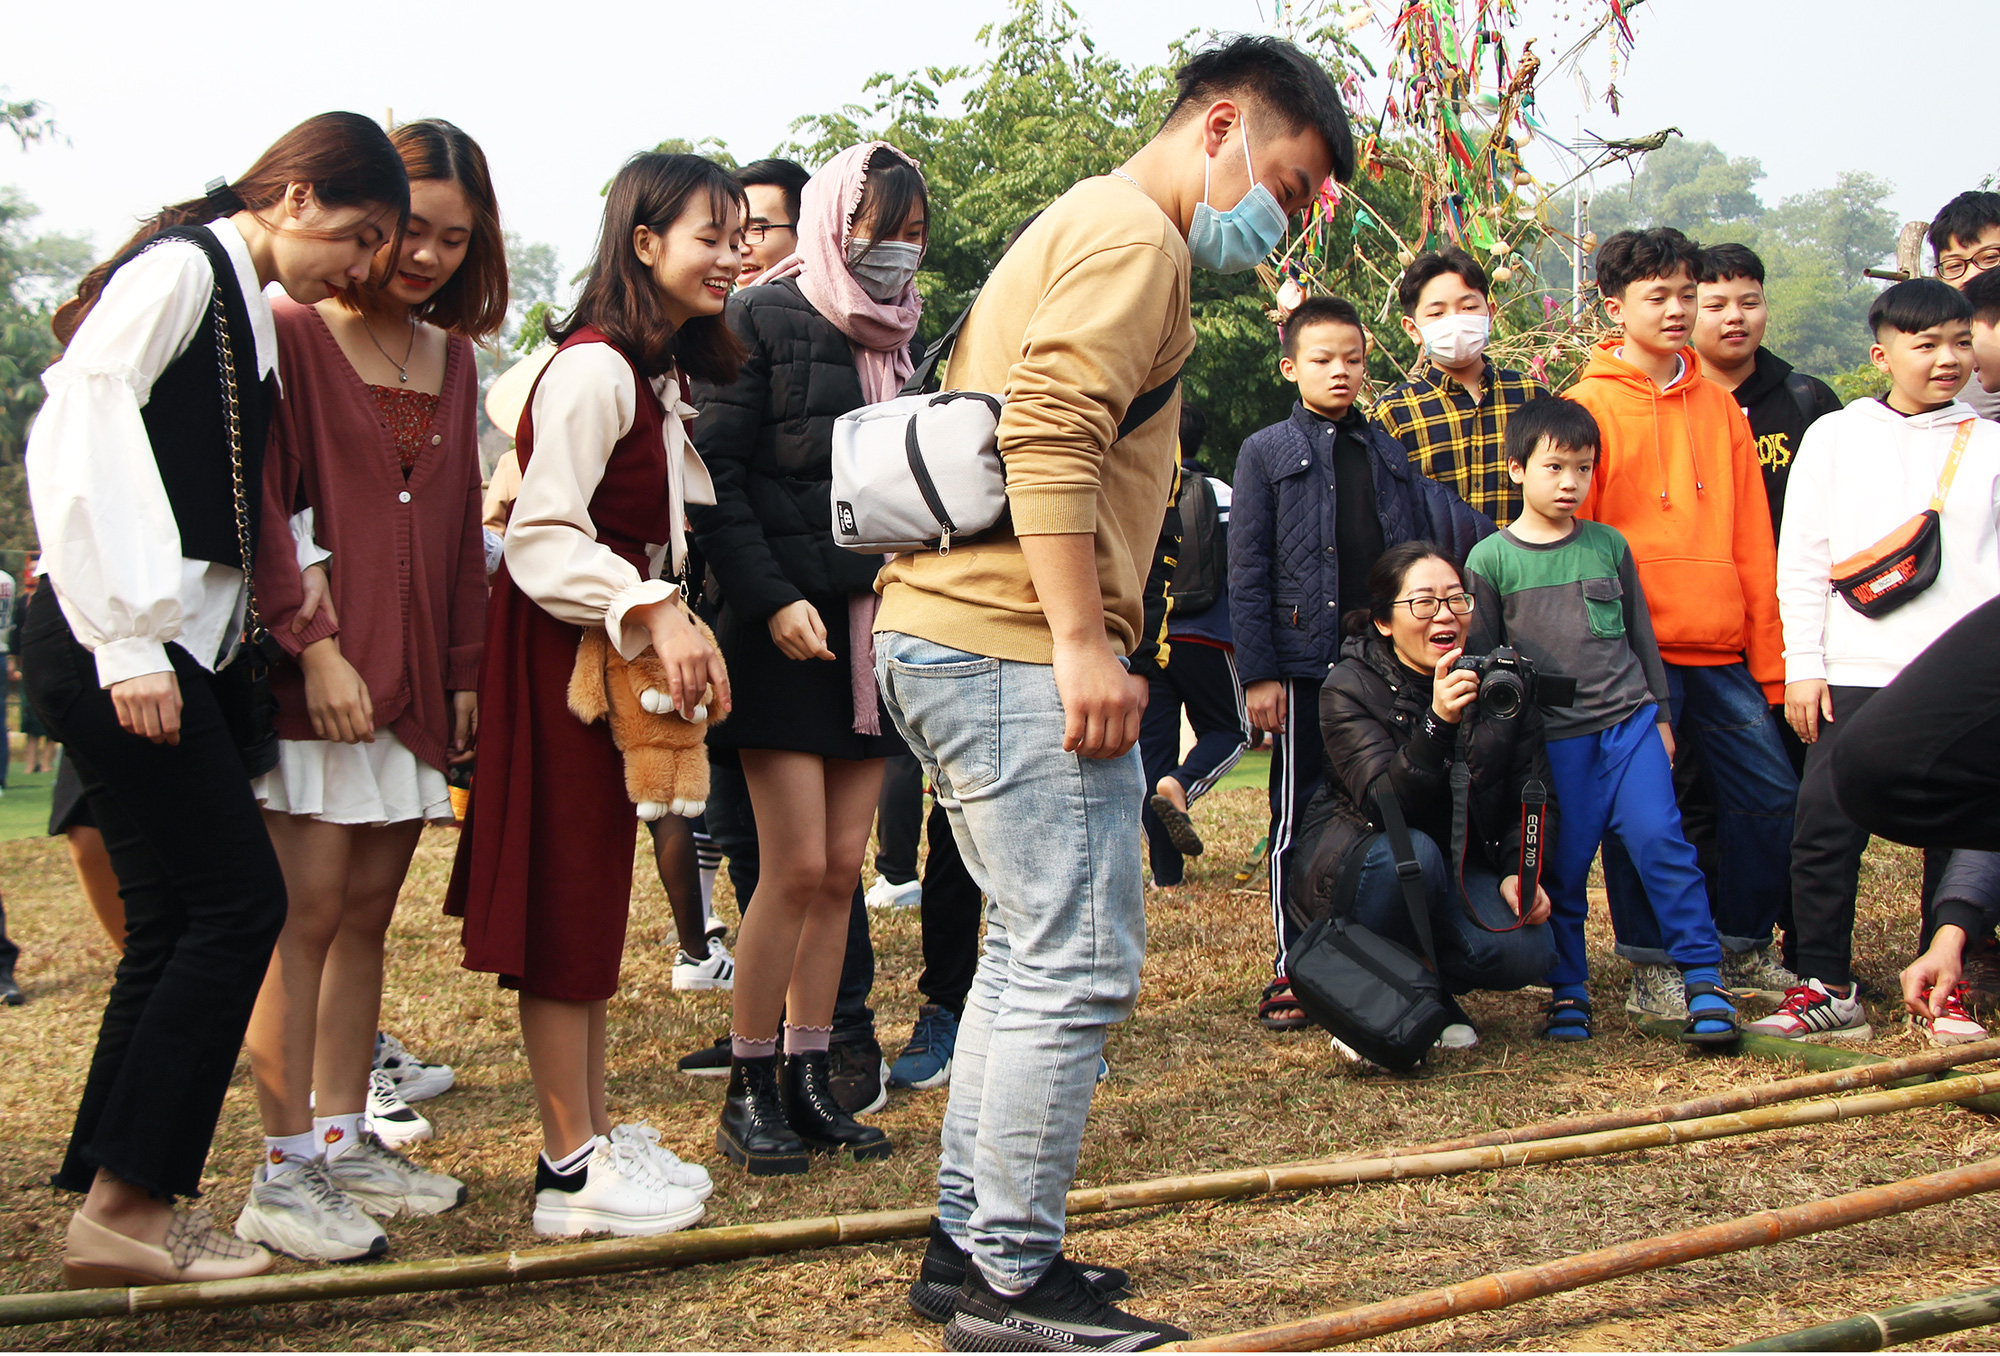 Young people play games at a festival reviving Kho Mu people's tradition of new year celebrations at the Vietnam National Village for Ethnic Culture and Tourism in Hanoi, January 24, 2021. Photo: Ha Quan / Tuoi Tre